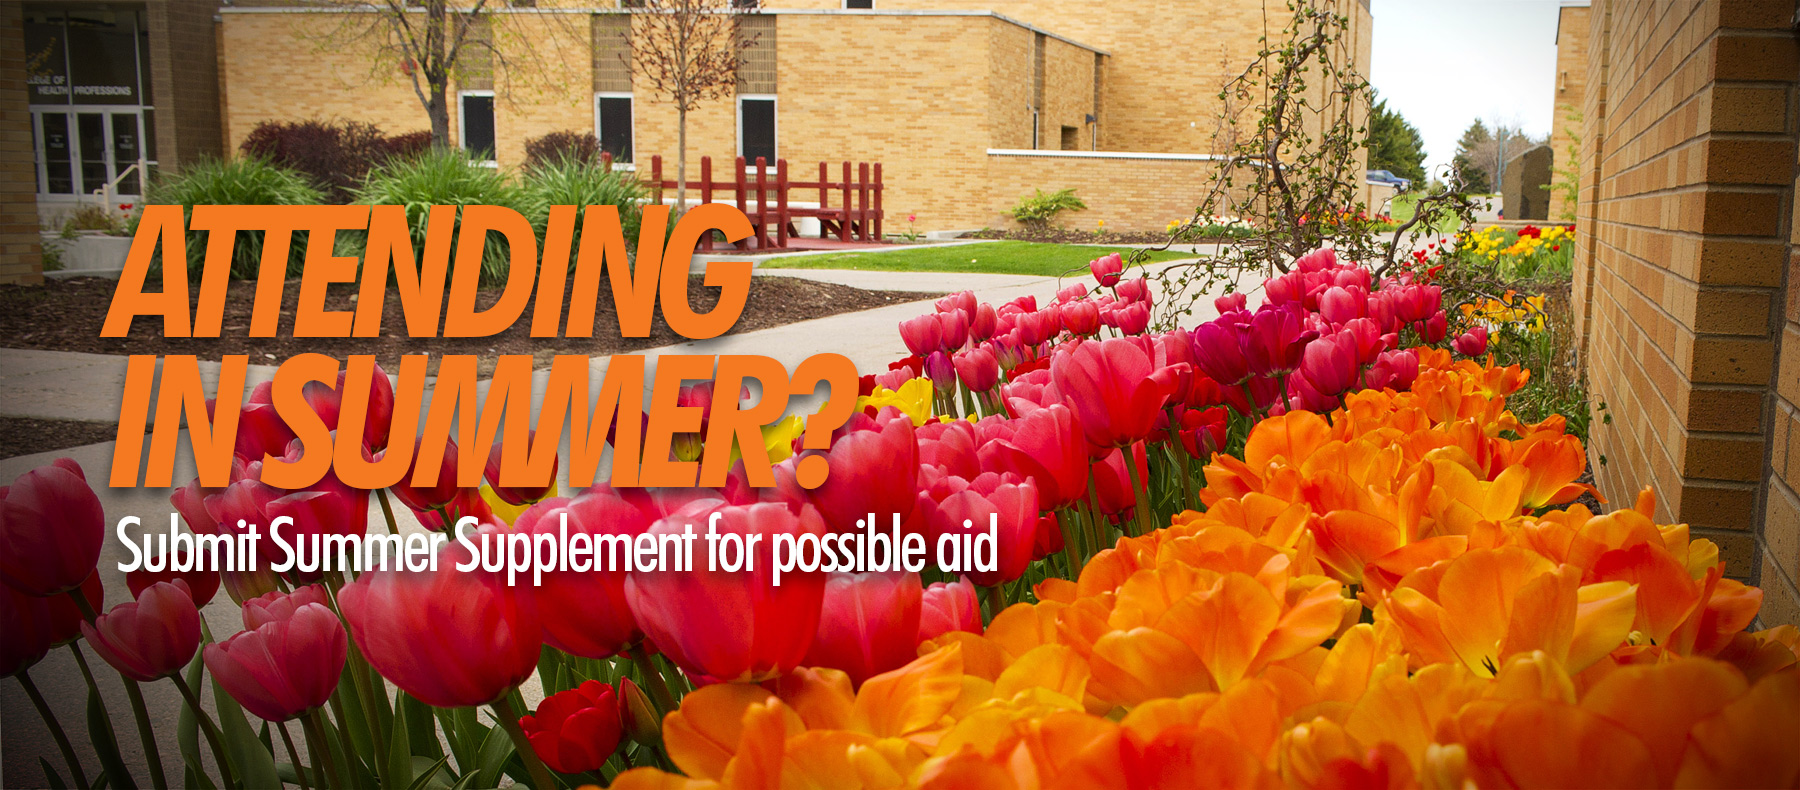 Summer flowers and ISU buildings